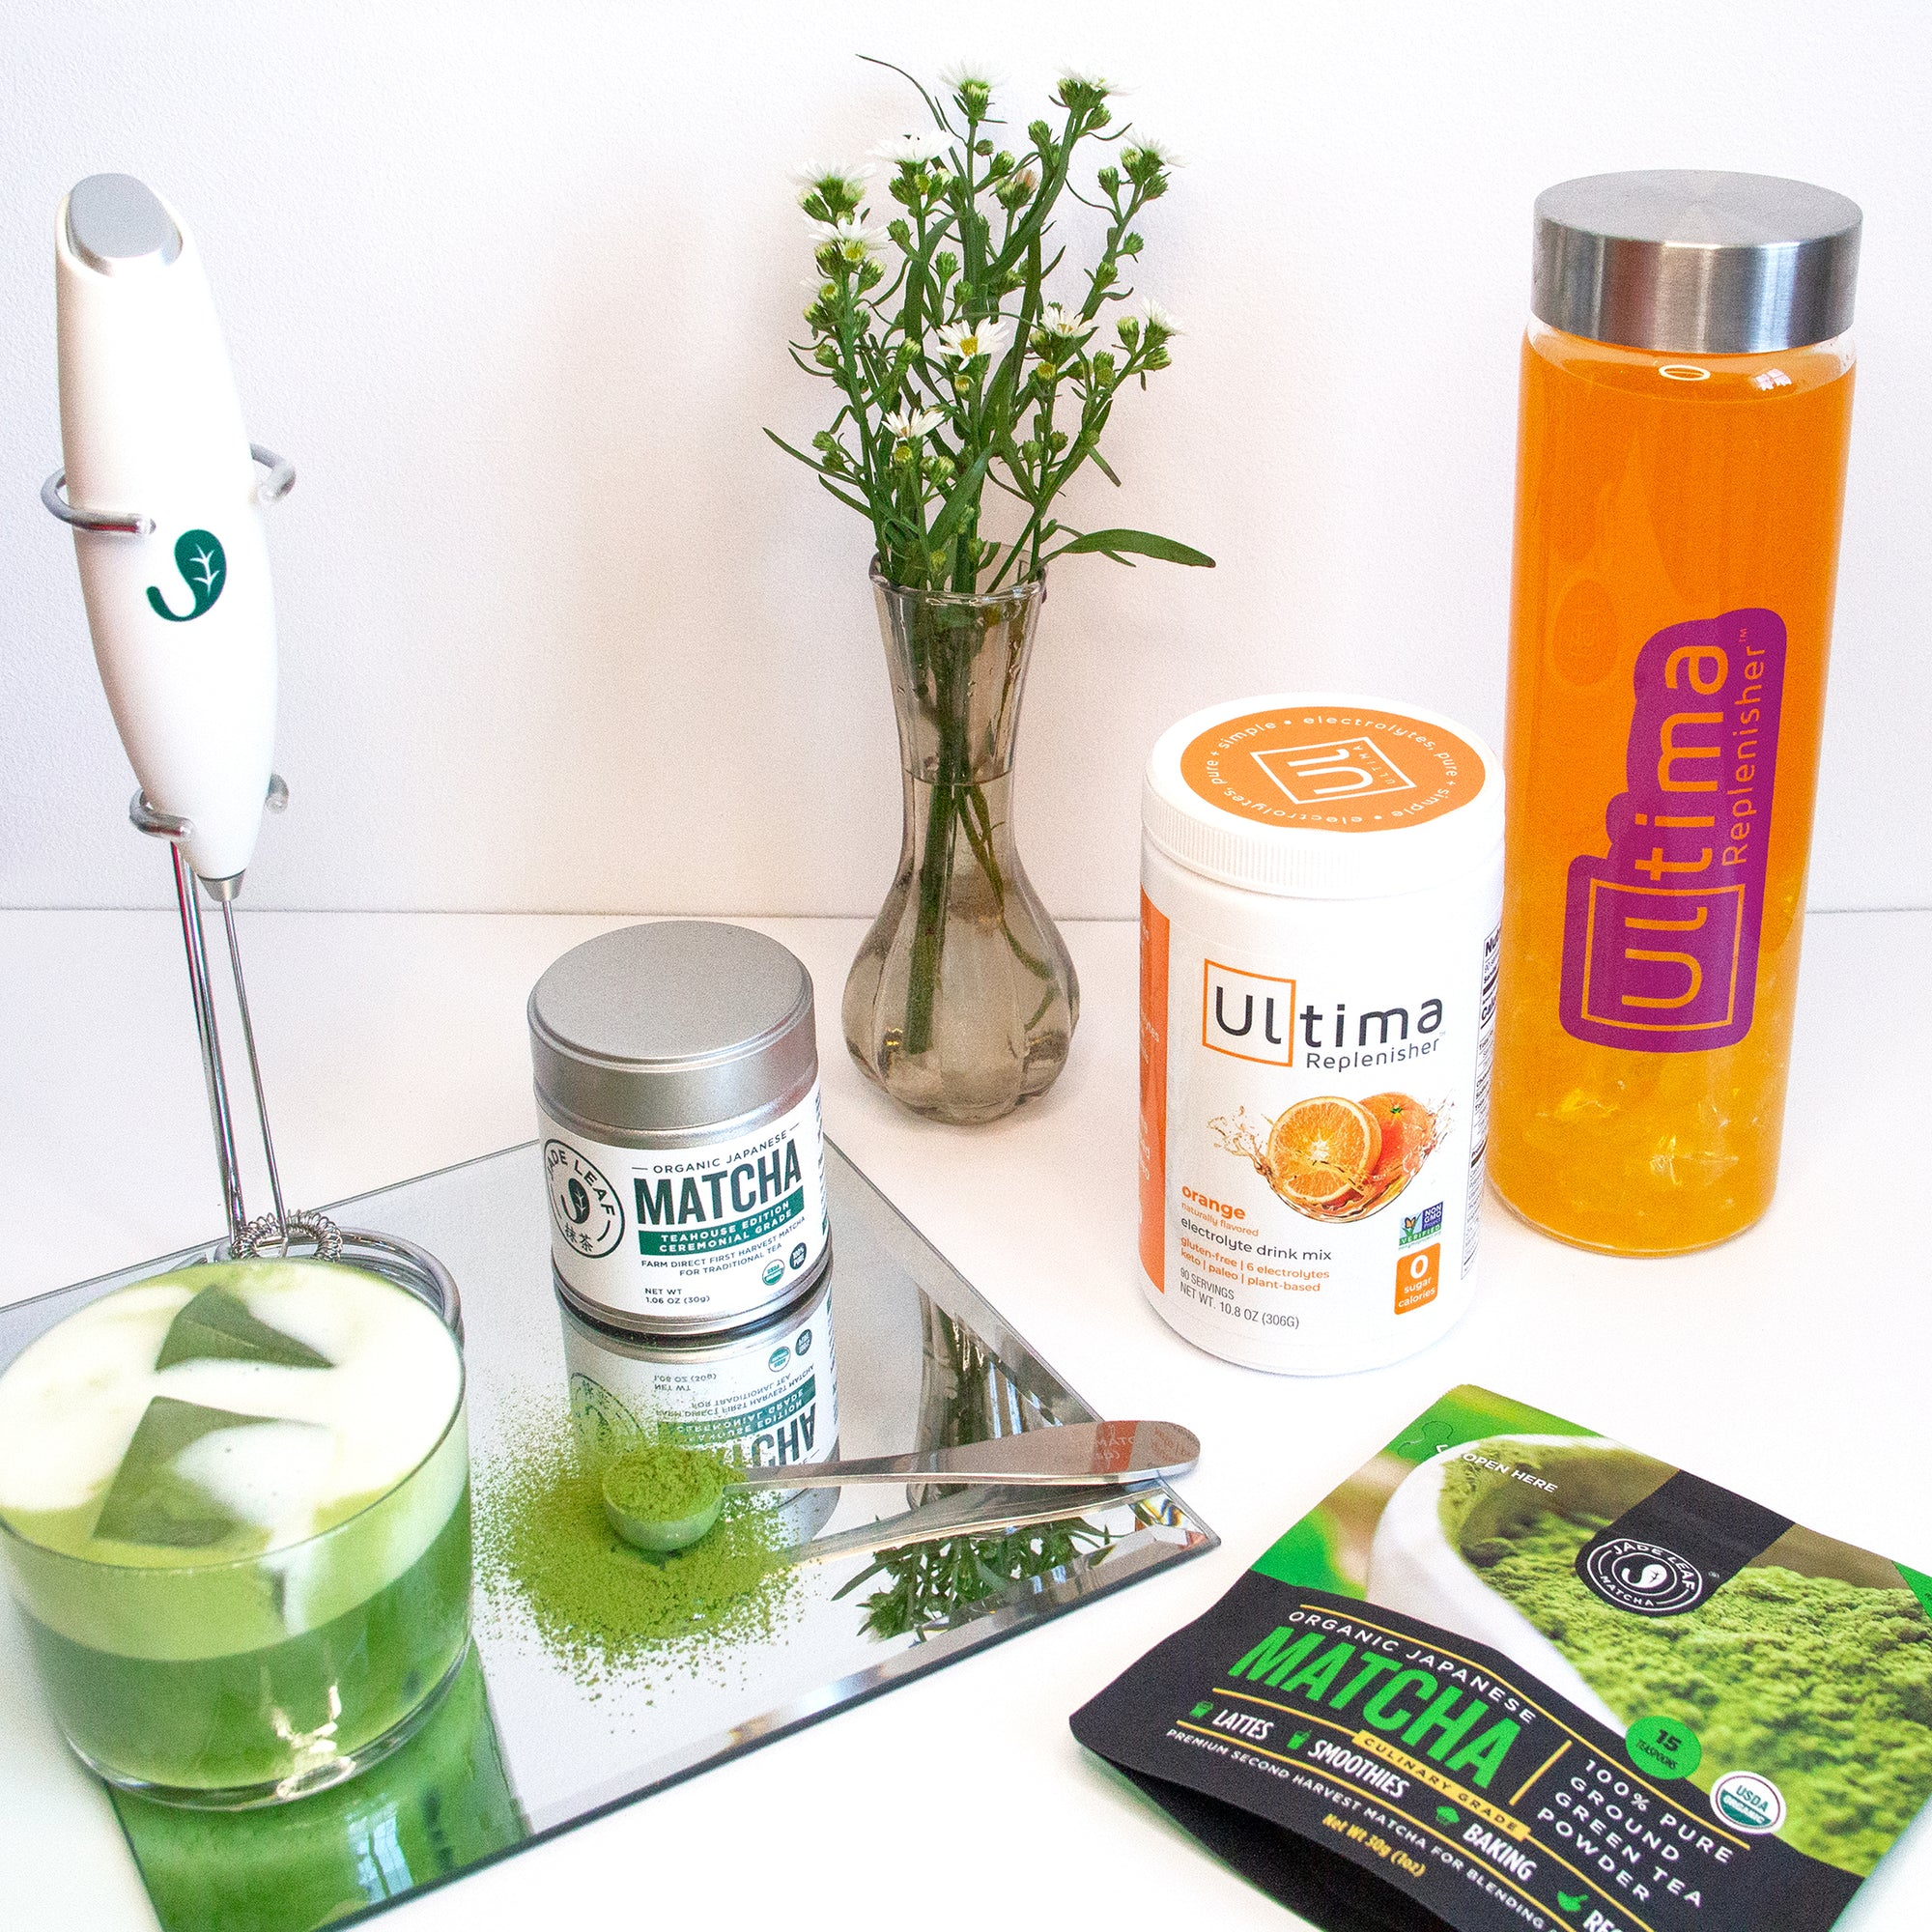 Ultima Replenisher and Jade Leaf Matcha Giveaway